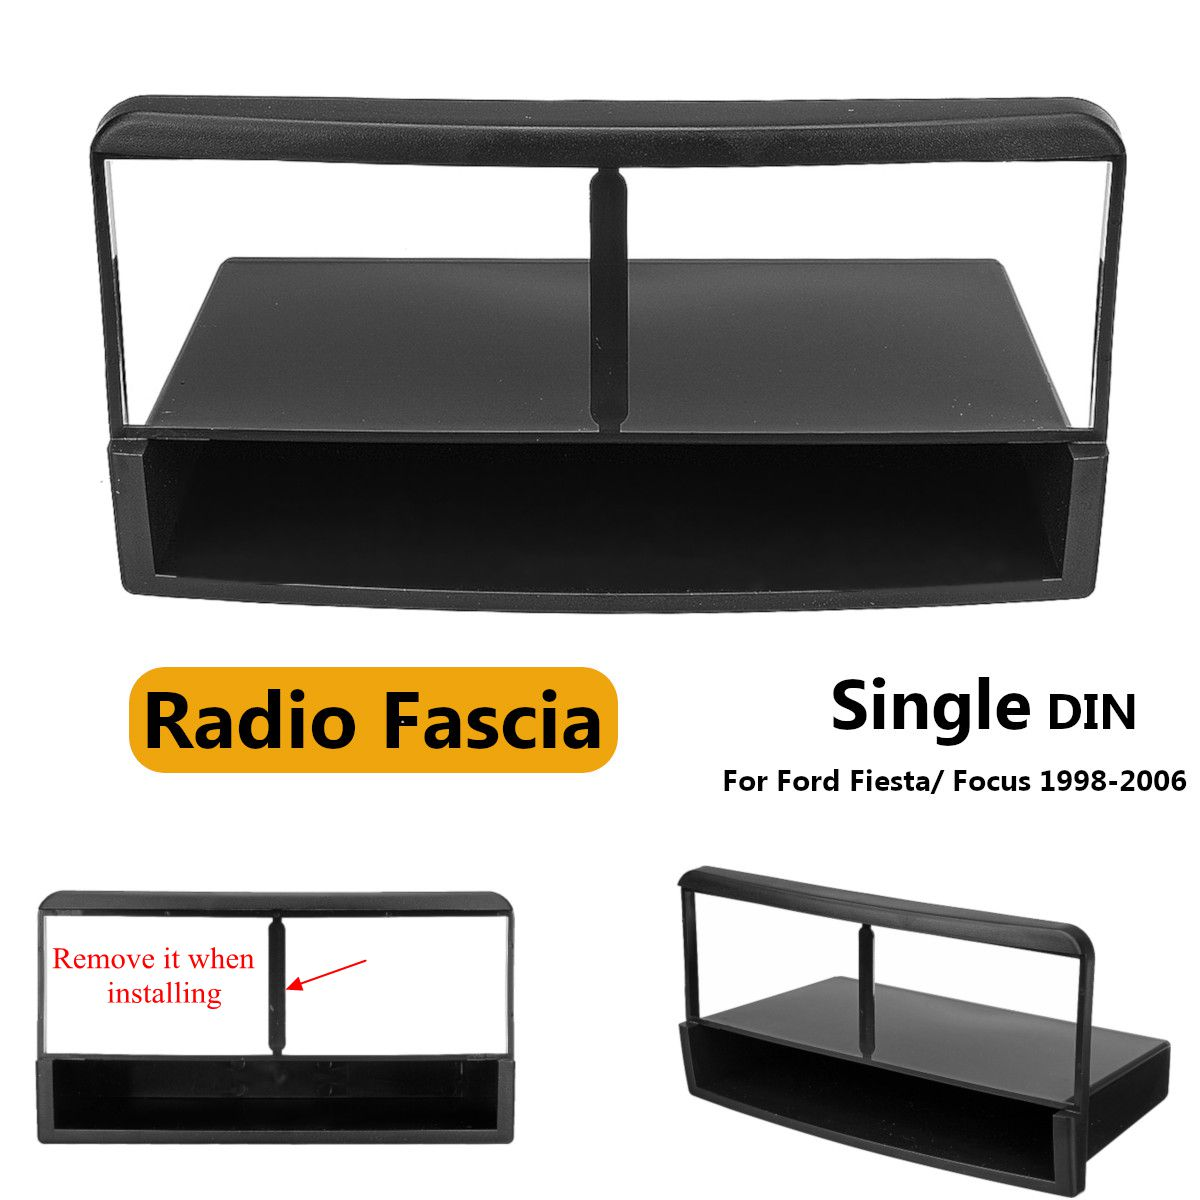 Car Stereo Radio DVD Fascia Panel Plate Frame 1 Din Panel Audio Dash Mount Kit Adapter For Ford For Fiesta For Focus 1998-2006